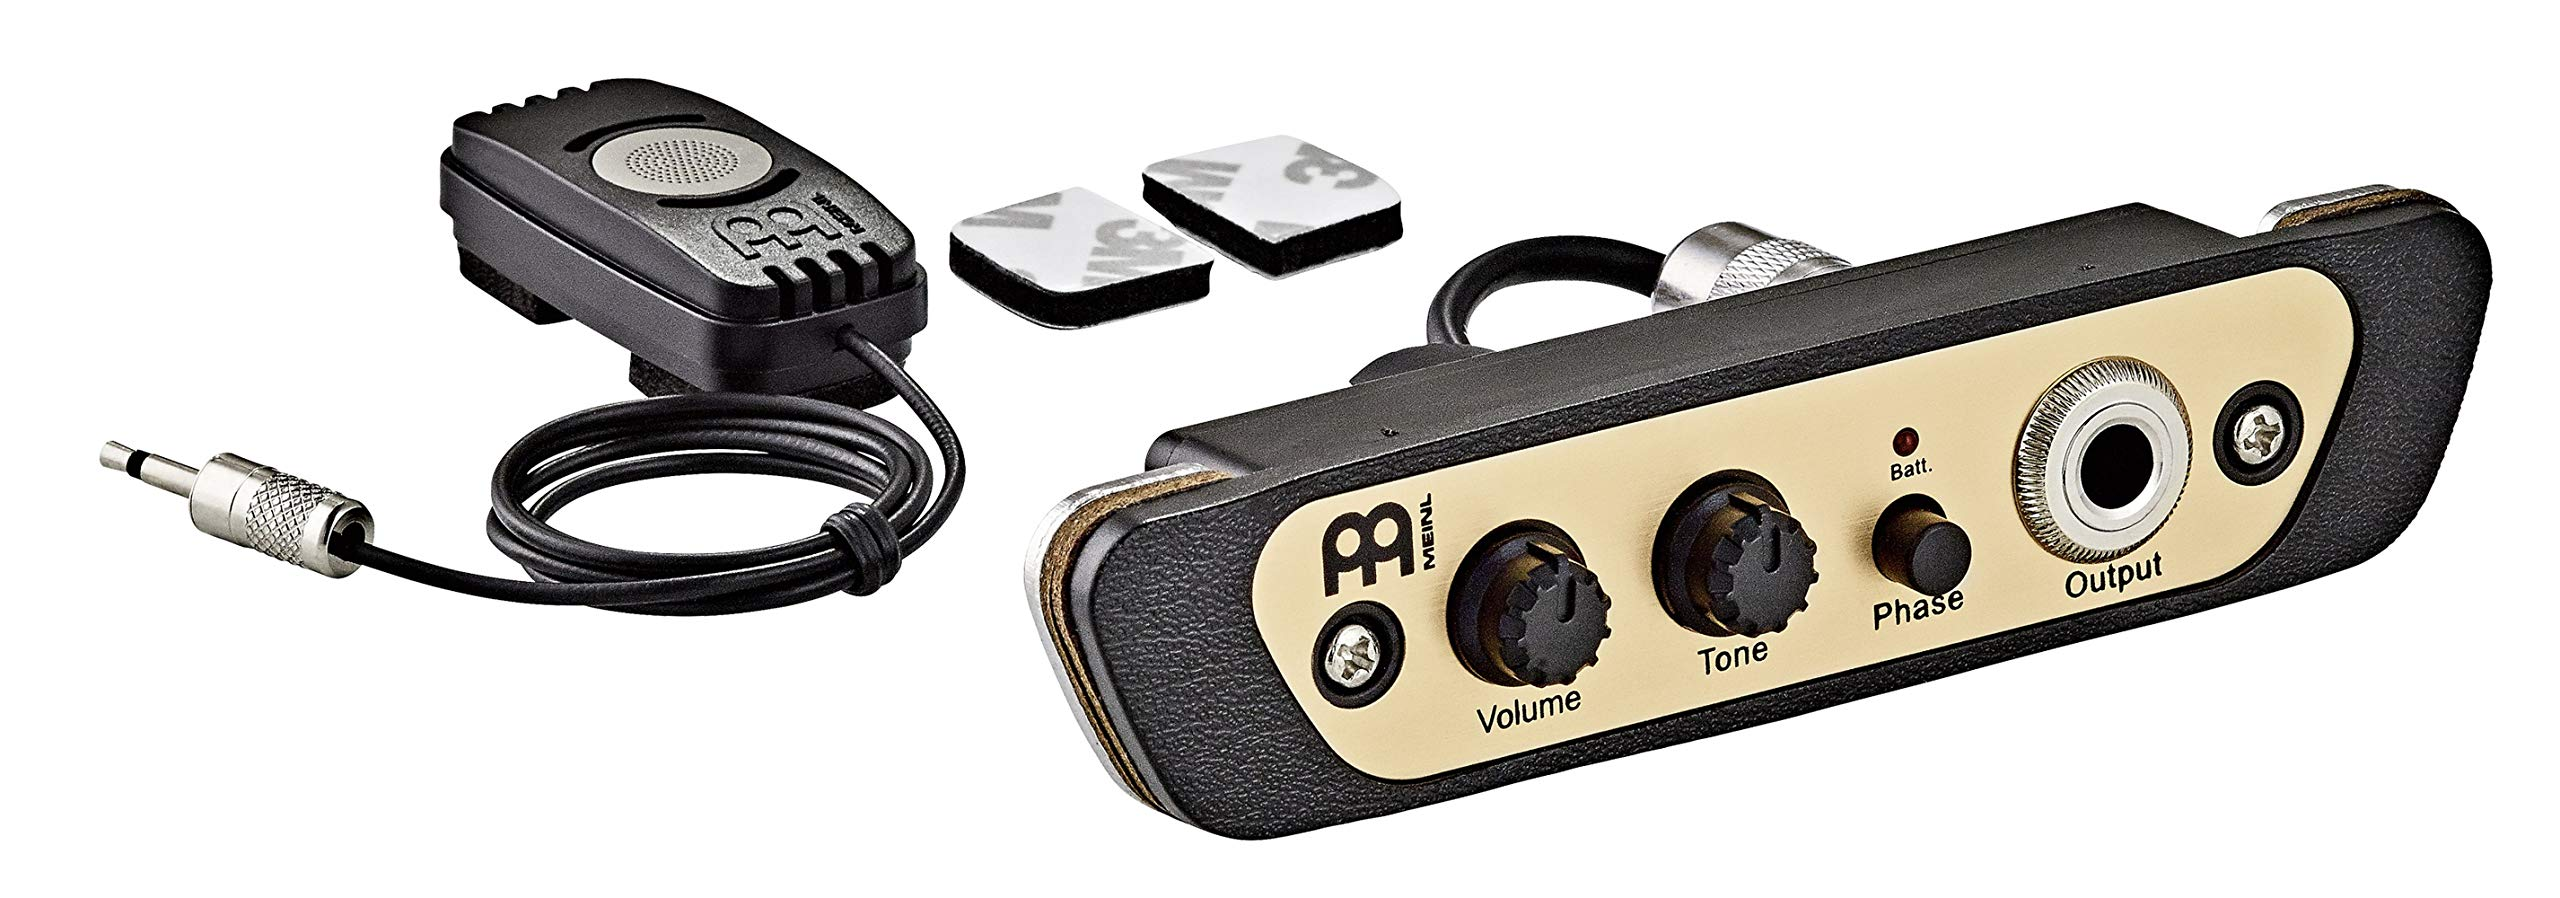 Meinl Percussion Cajon Box Drum Preamp/Pickup for Most Common Models, Eliminate Mic Stands and Get Crystal Clear Sounds, 2-YEAR WARRANTY (PA-CAJ)